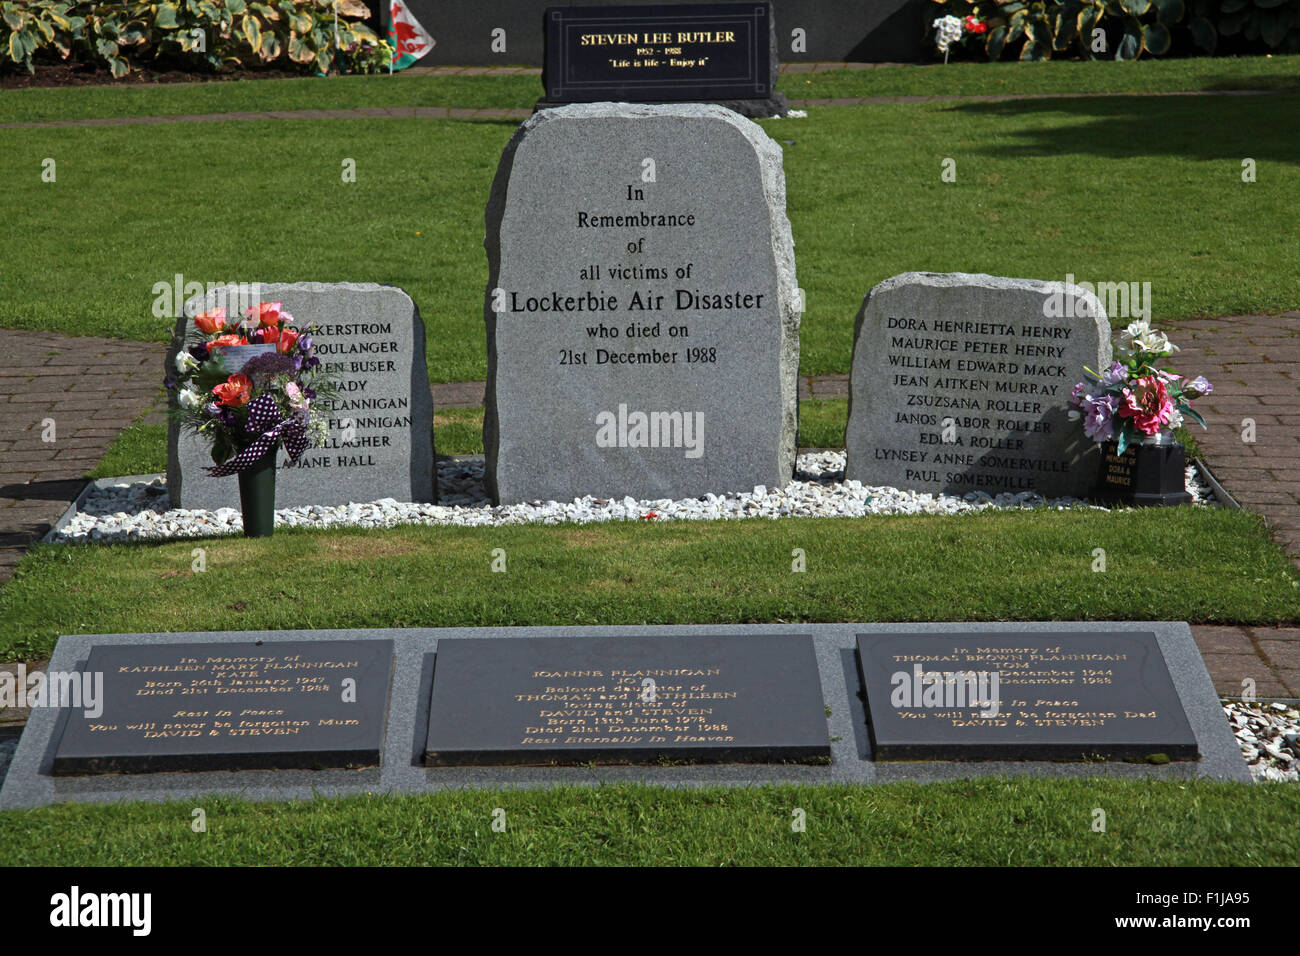 Entrance,Scotland,Lodge,Visitors,Centre,DLVC,Trust,Lockerbie,Memorial,Remembrance,Scotland,Victims,Pan,Am,PanAm,flight,103,bomb,bombing,terrorist,December,1988,attack,crash,dead,site,21/12/1988,270,victims,Scottish,Town,conspiracy,blast,Tundergarth,Room,garden,of,Dryfesdale,Cemetery,news,New York,GoTonySmith,Lodge,Visitors,Centre,DLVC,Trust,Lockerbie,Memorial,Scotland,Victims,Pan,Am,PanAm,flight,103,bomb,bombing,terrorist,December,1988,attack,crash,dead,site,21/12/1988,270,victims,Scottish,Town,conspiracy,blast,Tundergarth,Room,garden,of,Dryfesdale,Cemetery,news,Cultural,understanding,remembering,innocent,transatlantic,Frankfurt,Detroit,Libyan,Libya,Colonel Muammar Gaddafi,civil,case,compensation,terrorism,PA103,30,30years,years,Syracuse,University,SU,family,collections,Story,Archive,Archives,40,35,Timeline,saga,disaster,air,Scholars,program,programs,remembrance,Clipper Maid of the Seas,N739PA,Boeing,727,plane,aircraft,Scotland,UK,United Kingdom,GB,Great Britain,resting,place,Buy Pictures of,Buy Images Of,New York,al megrahi,30 Years